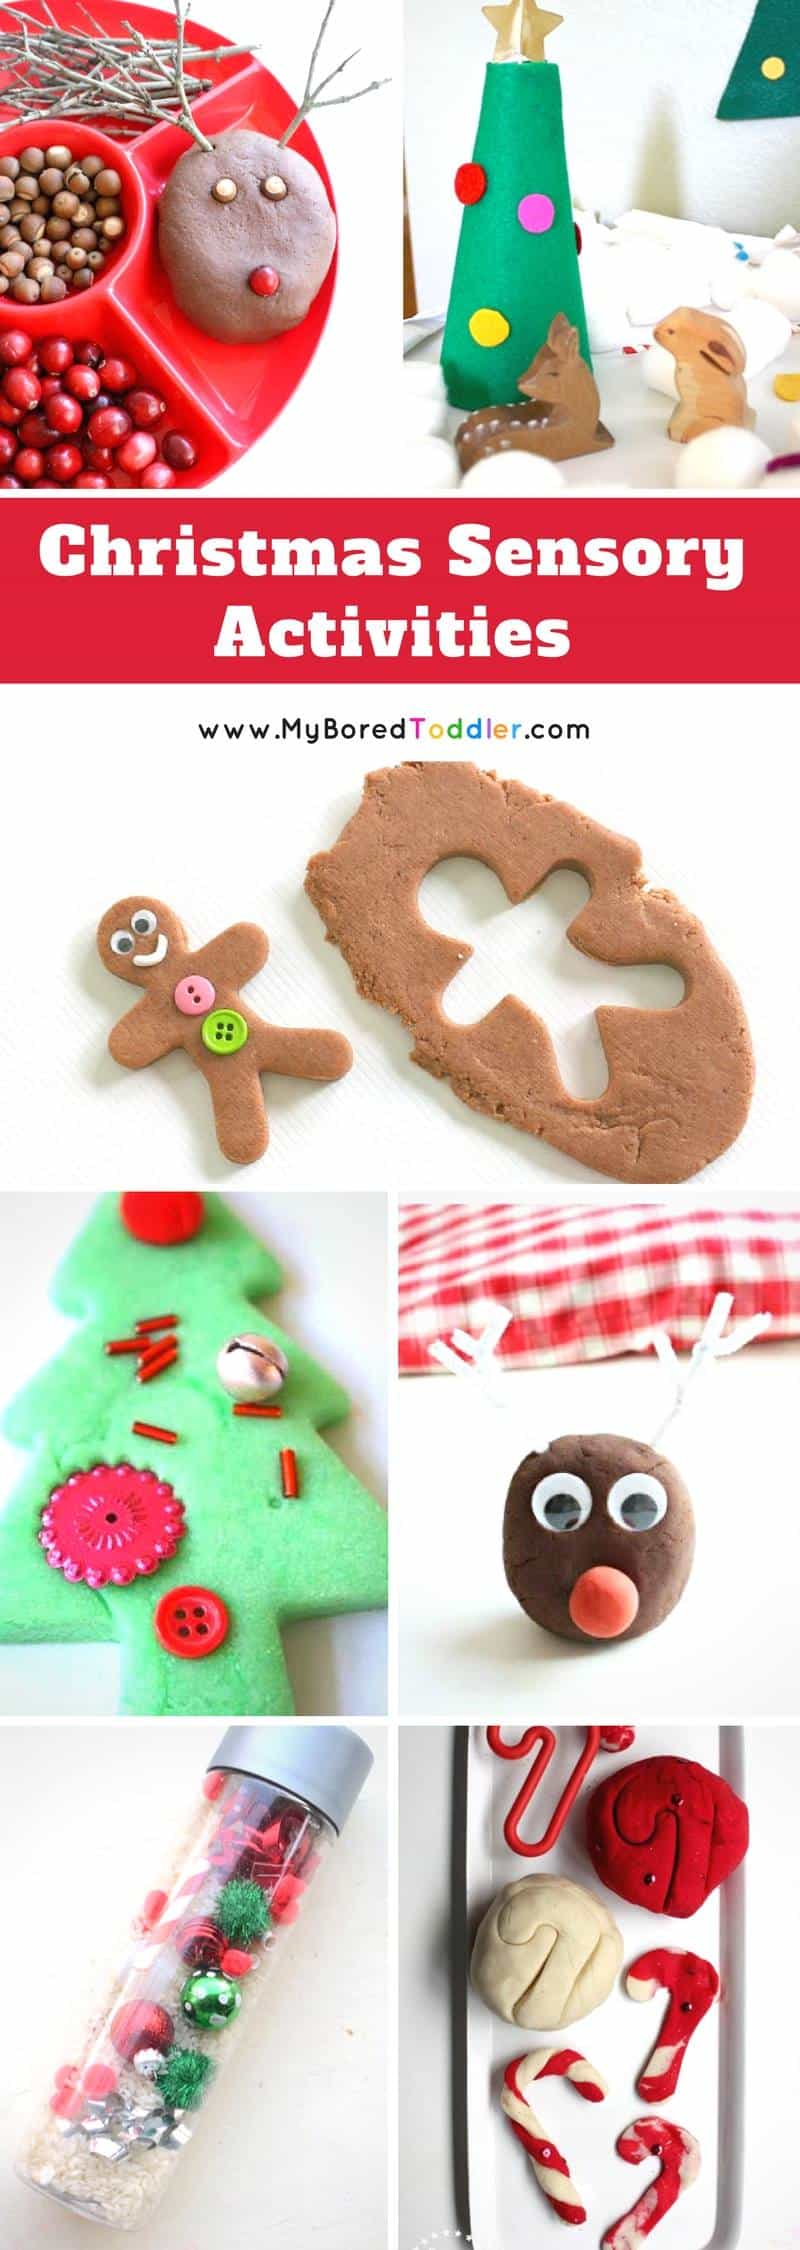 Christmas Sensory Play Ideas for Toddlers